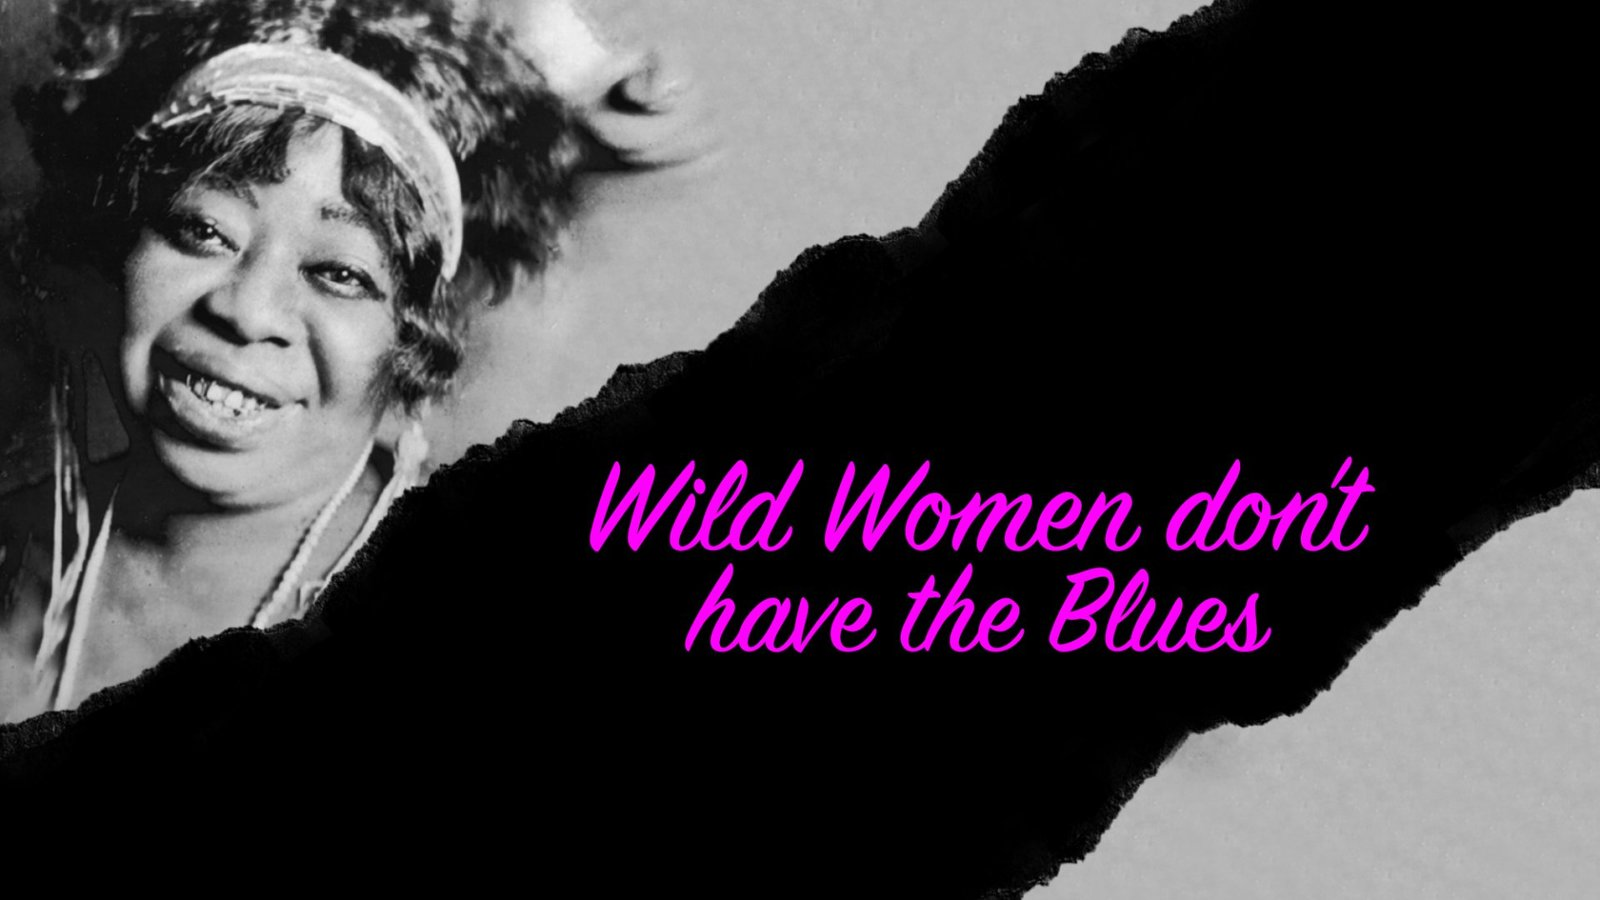 Wild Women Don't Have the Blues